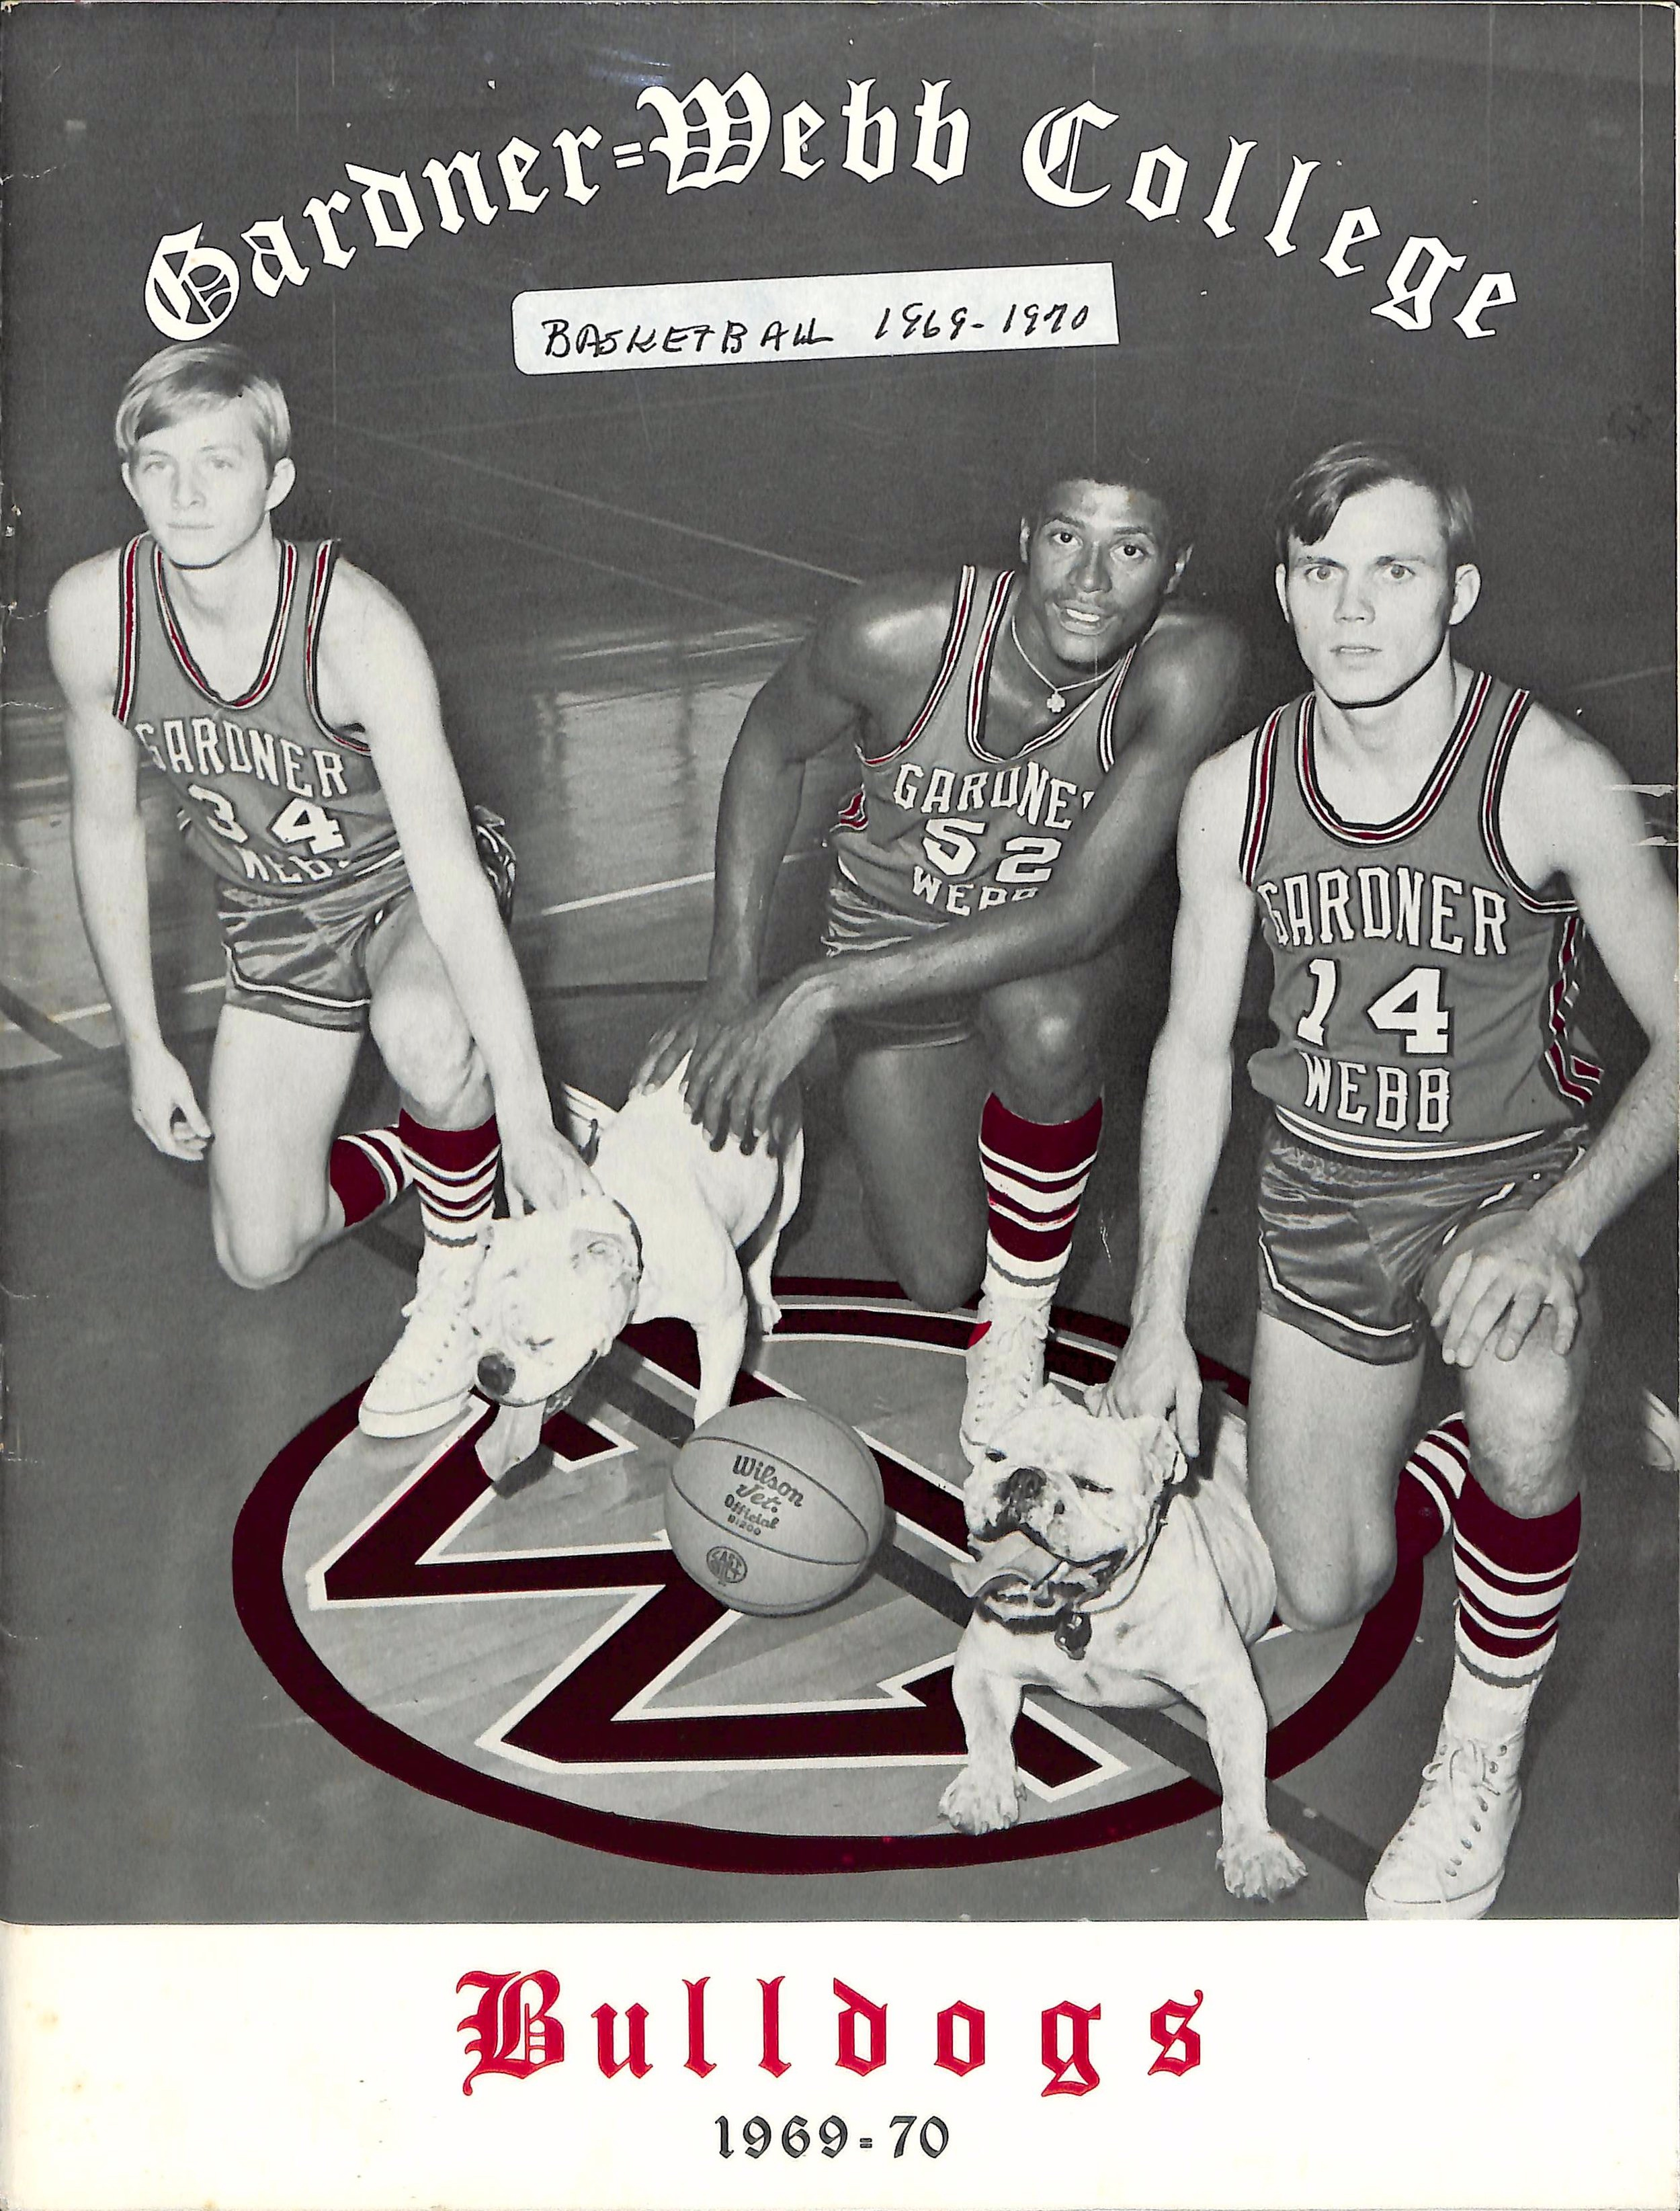 The cover of the 1969-1970 Gardner-Webb College yearbook, featuring members of the basketball team and Victor I or II.